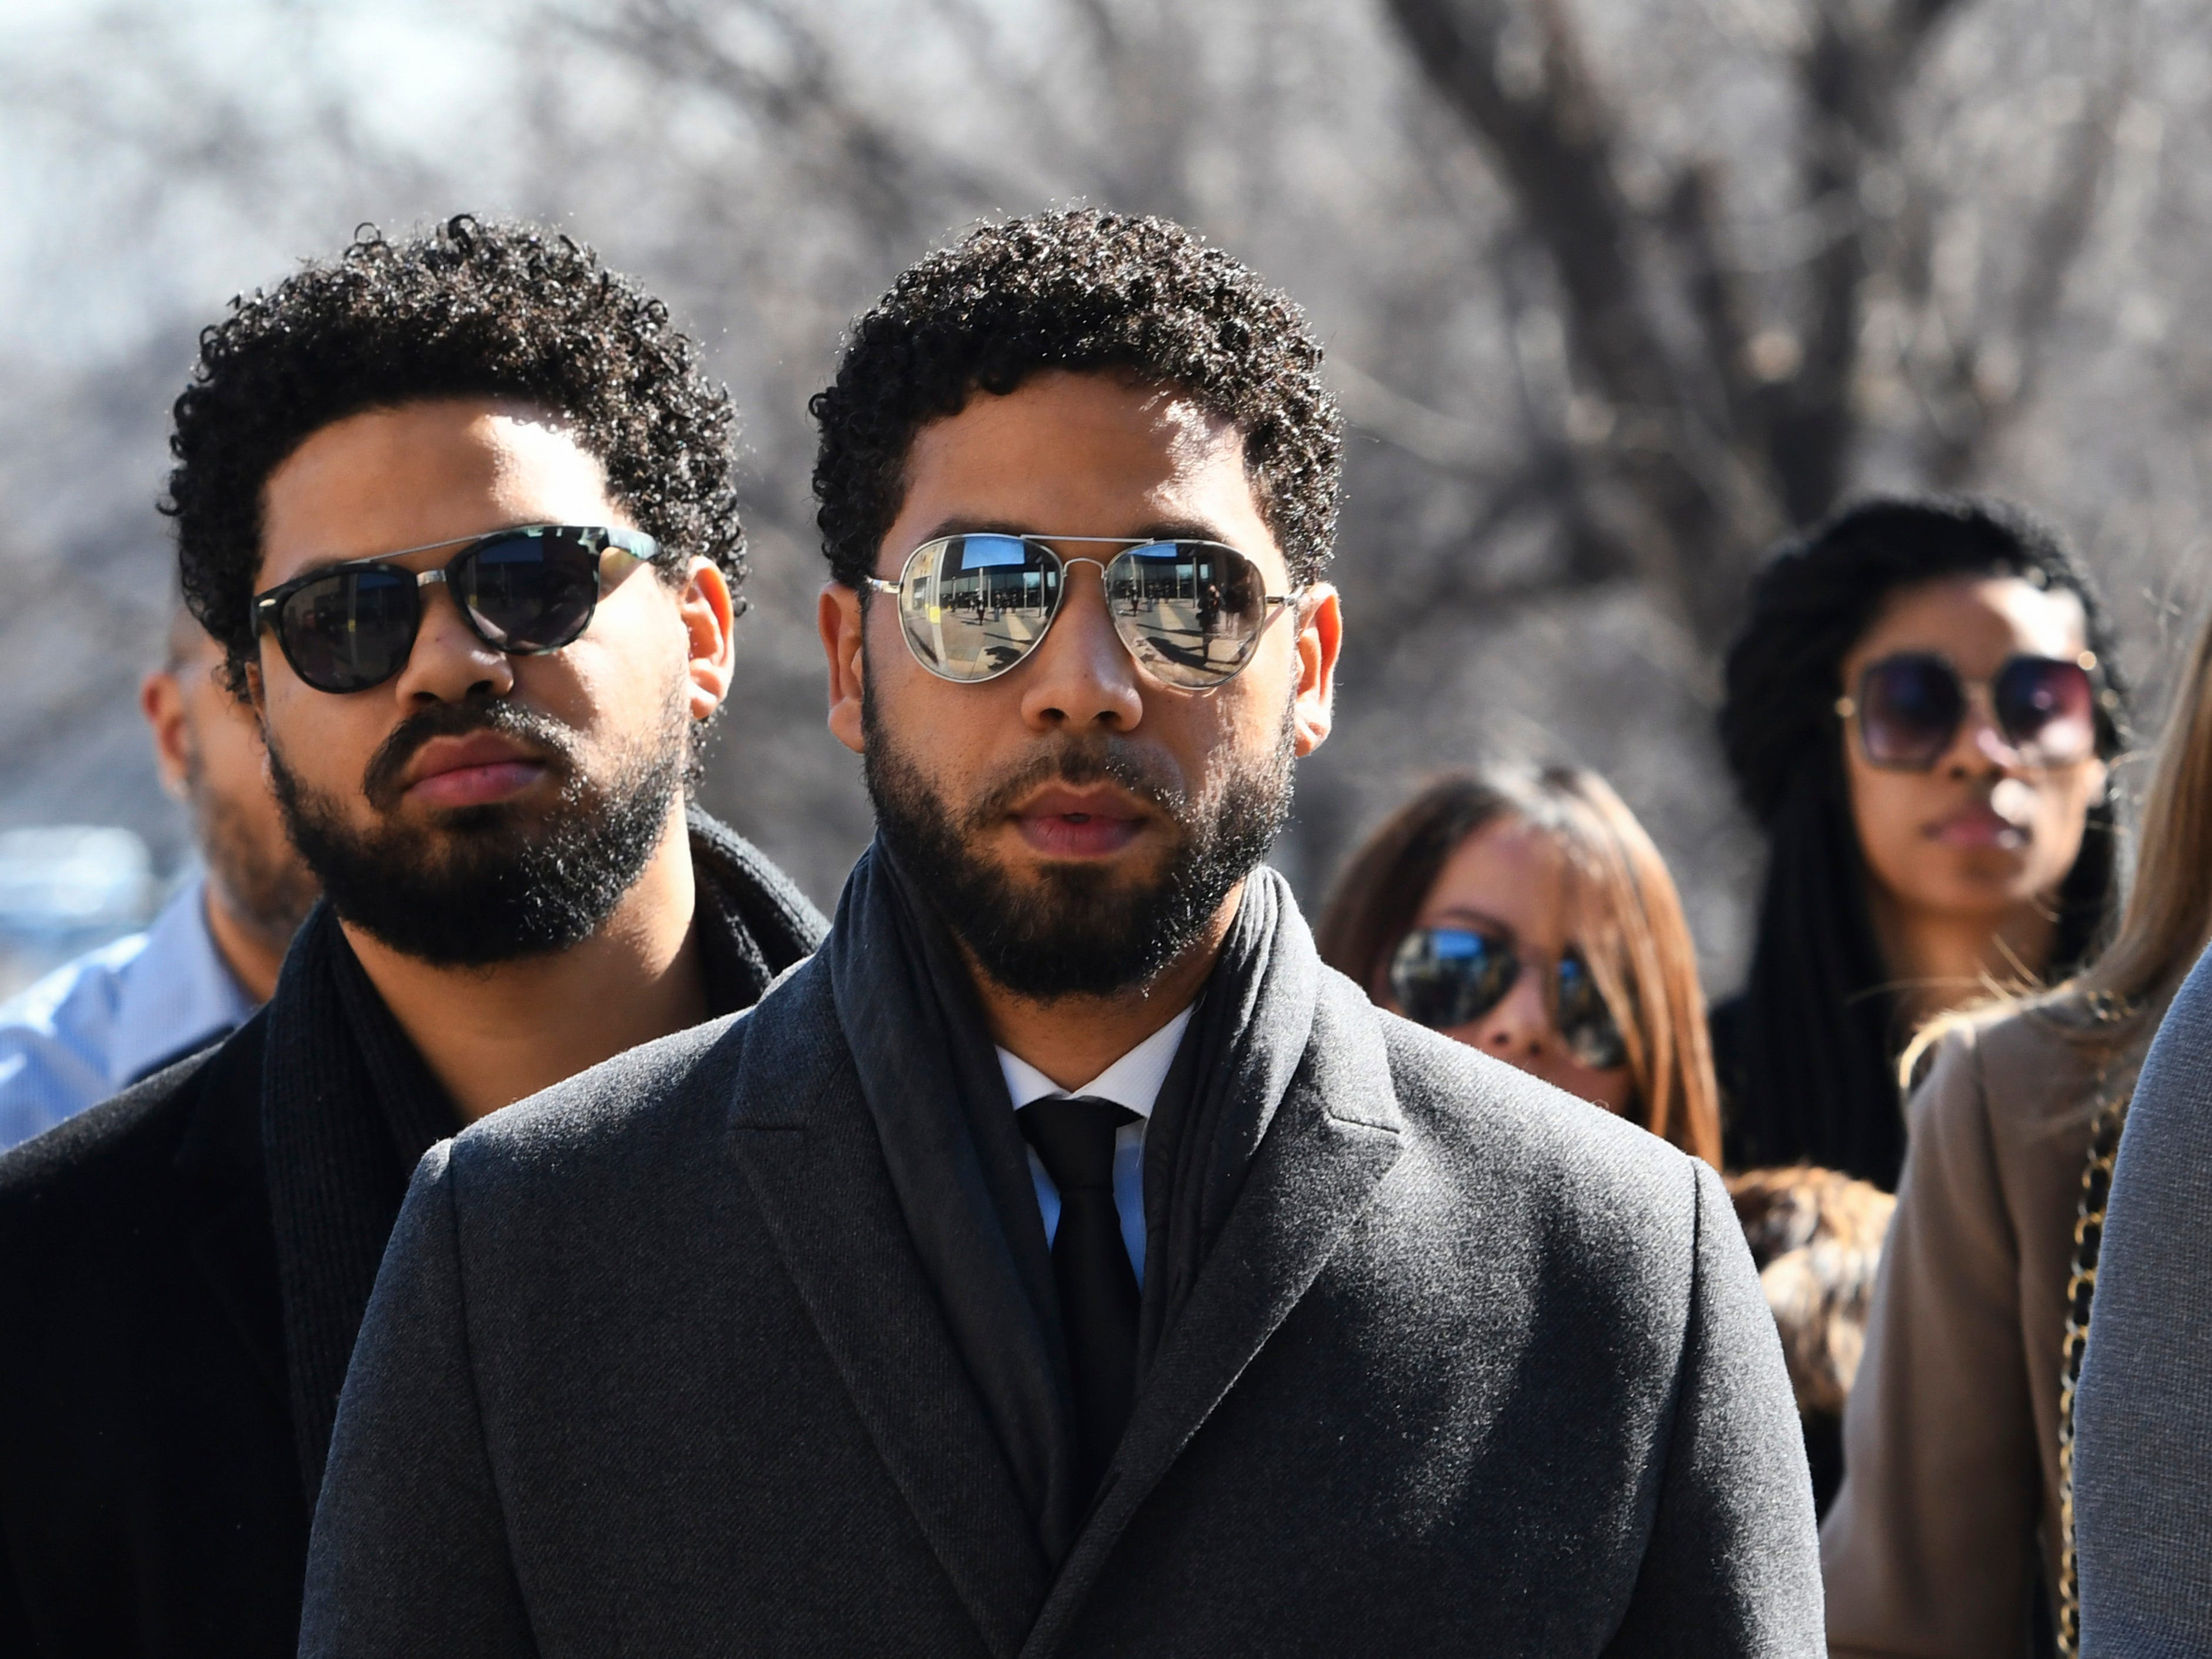 """Empire"" actor Jussie Smollett, center, arrives at Leighton Criminal Court Building for a hearing to discuss whether cameras will be allowed in the courtroom during his disorderly conduct case on Tuesday, March 12, 2019, in Chicago. A grand jury indicted Smollett last week on 16 felony counts accusing him of lying to the police about being the victim of a racist and homophobic attack by two masked men in downtown Chicago.(AP Photo/Matt Marton) ORG XMIT: ILMM109"